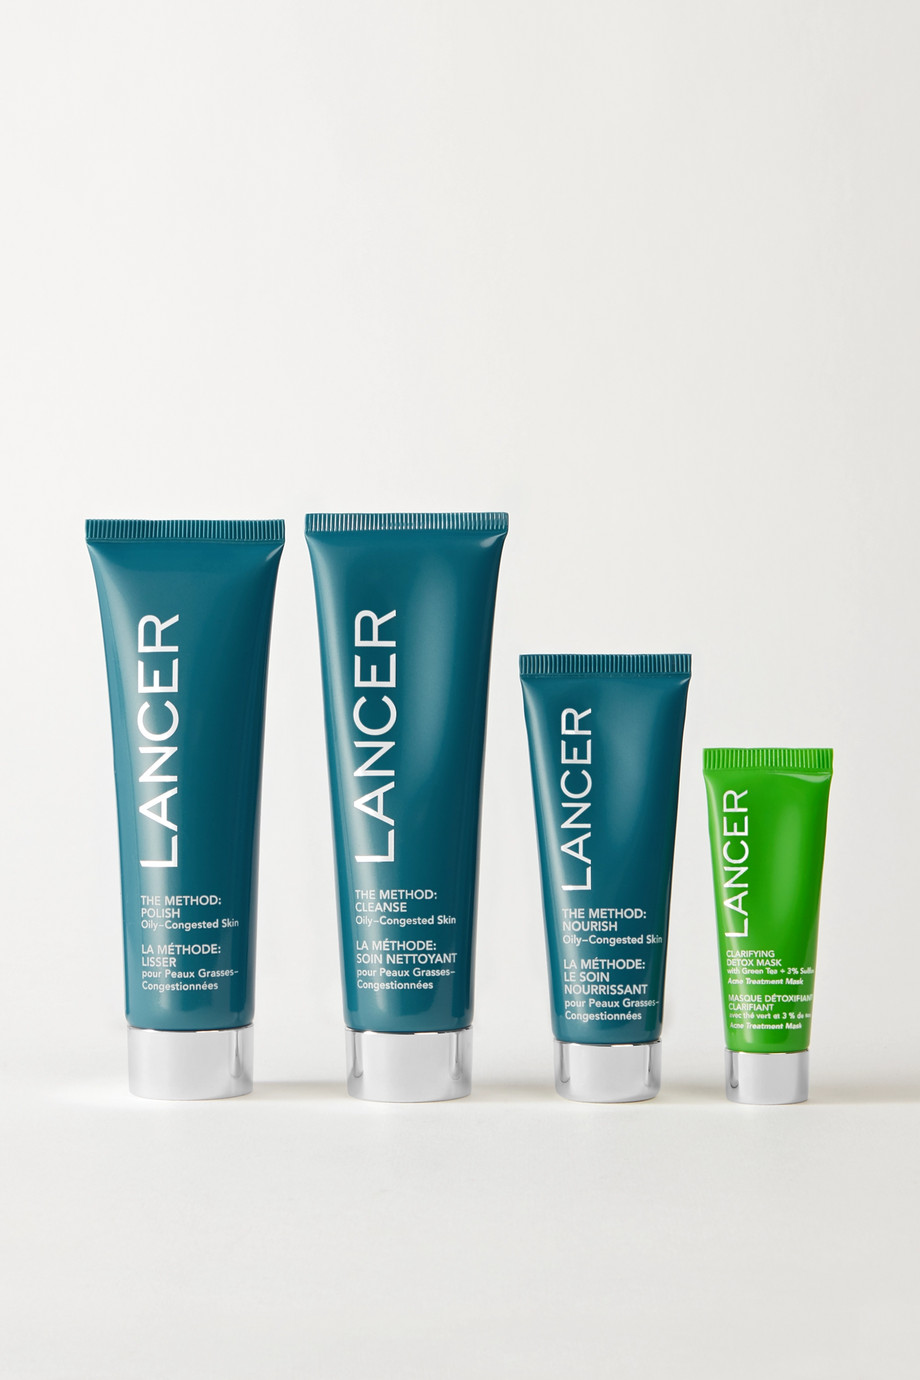 Lancer The Method: Intro Kit, Oily - Congested Skin